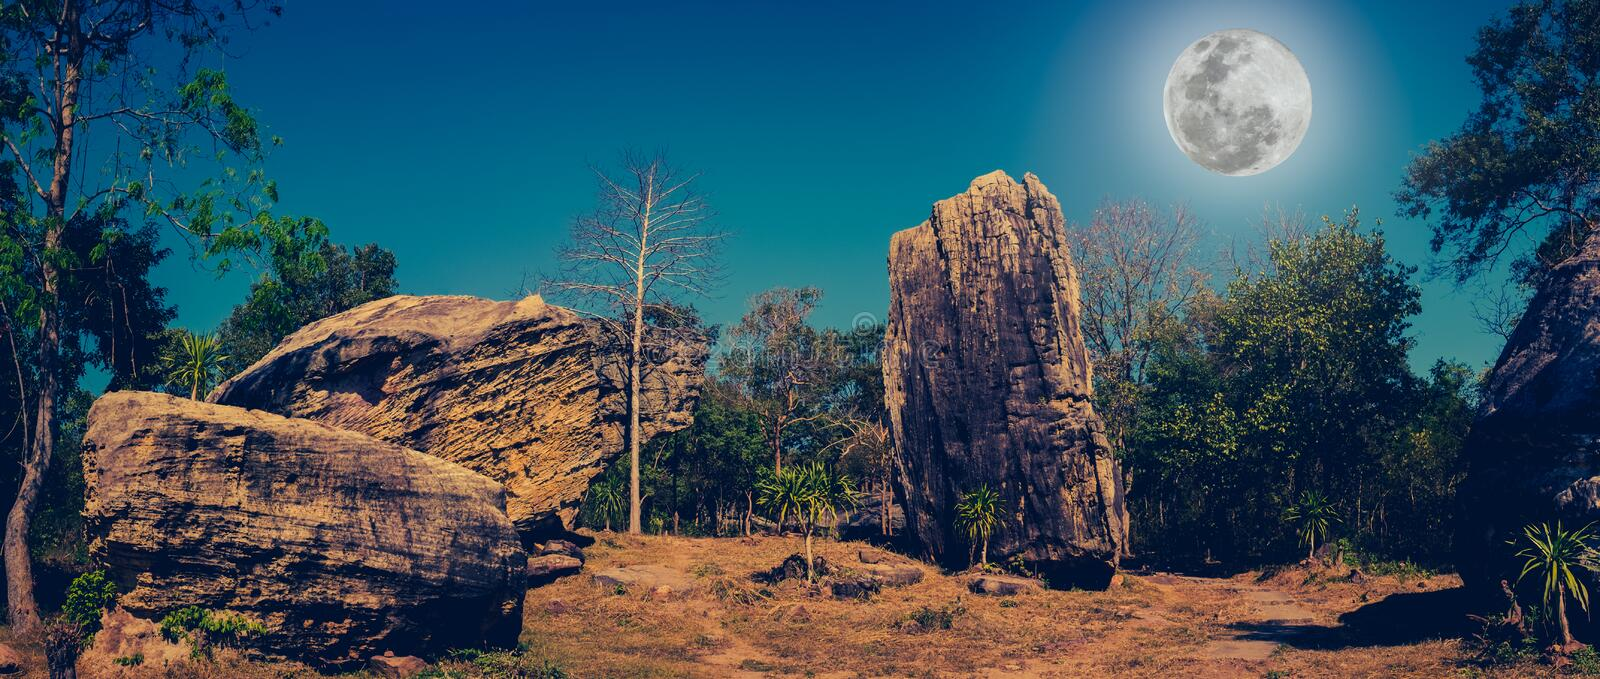 Panorama of boulders against beautiful sky and full moon over tr royalty free stock images